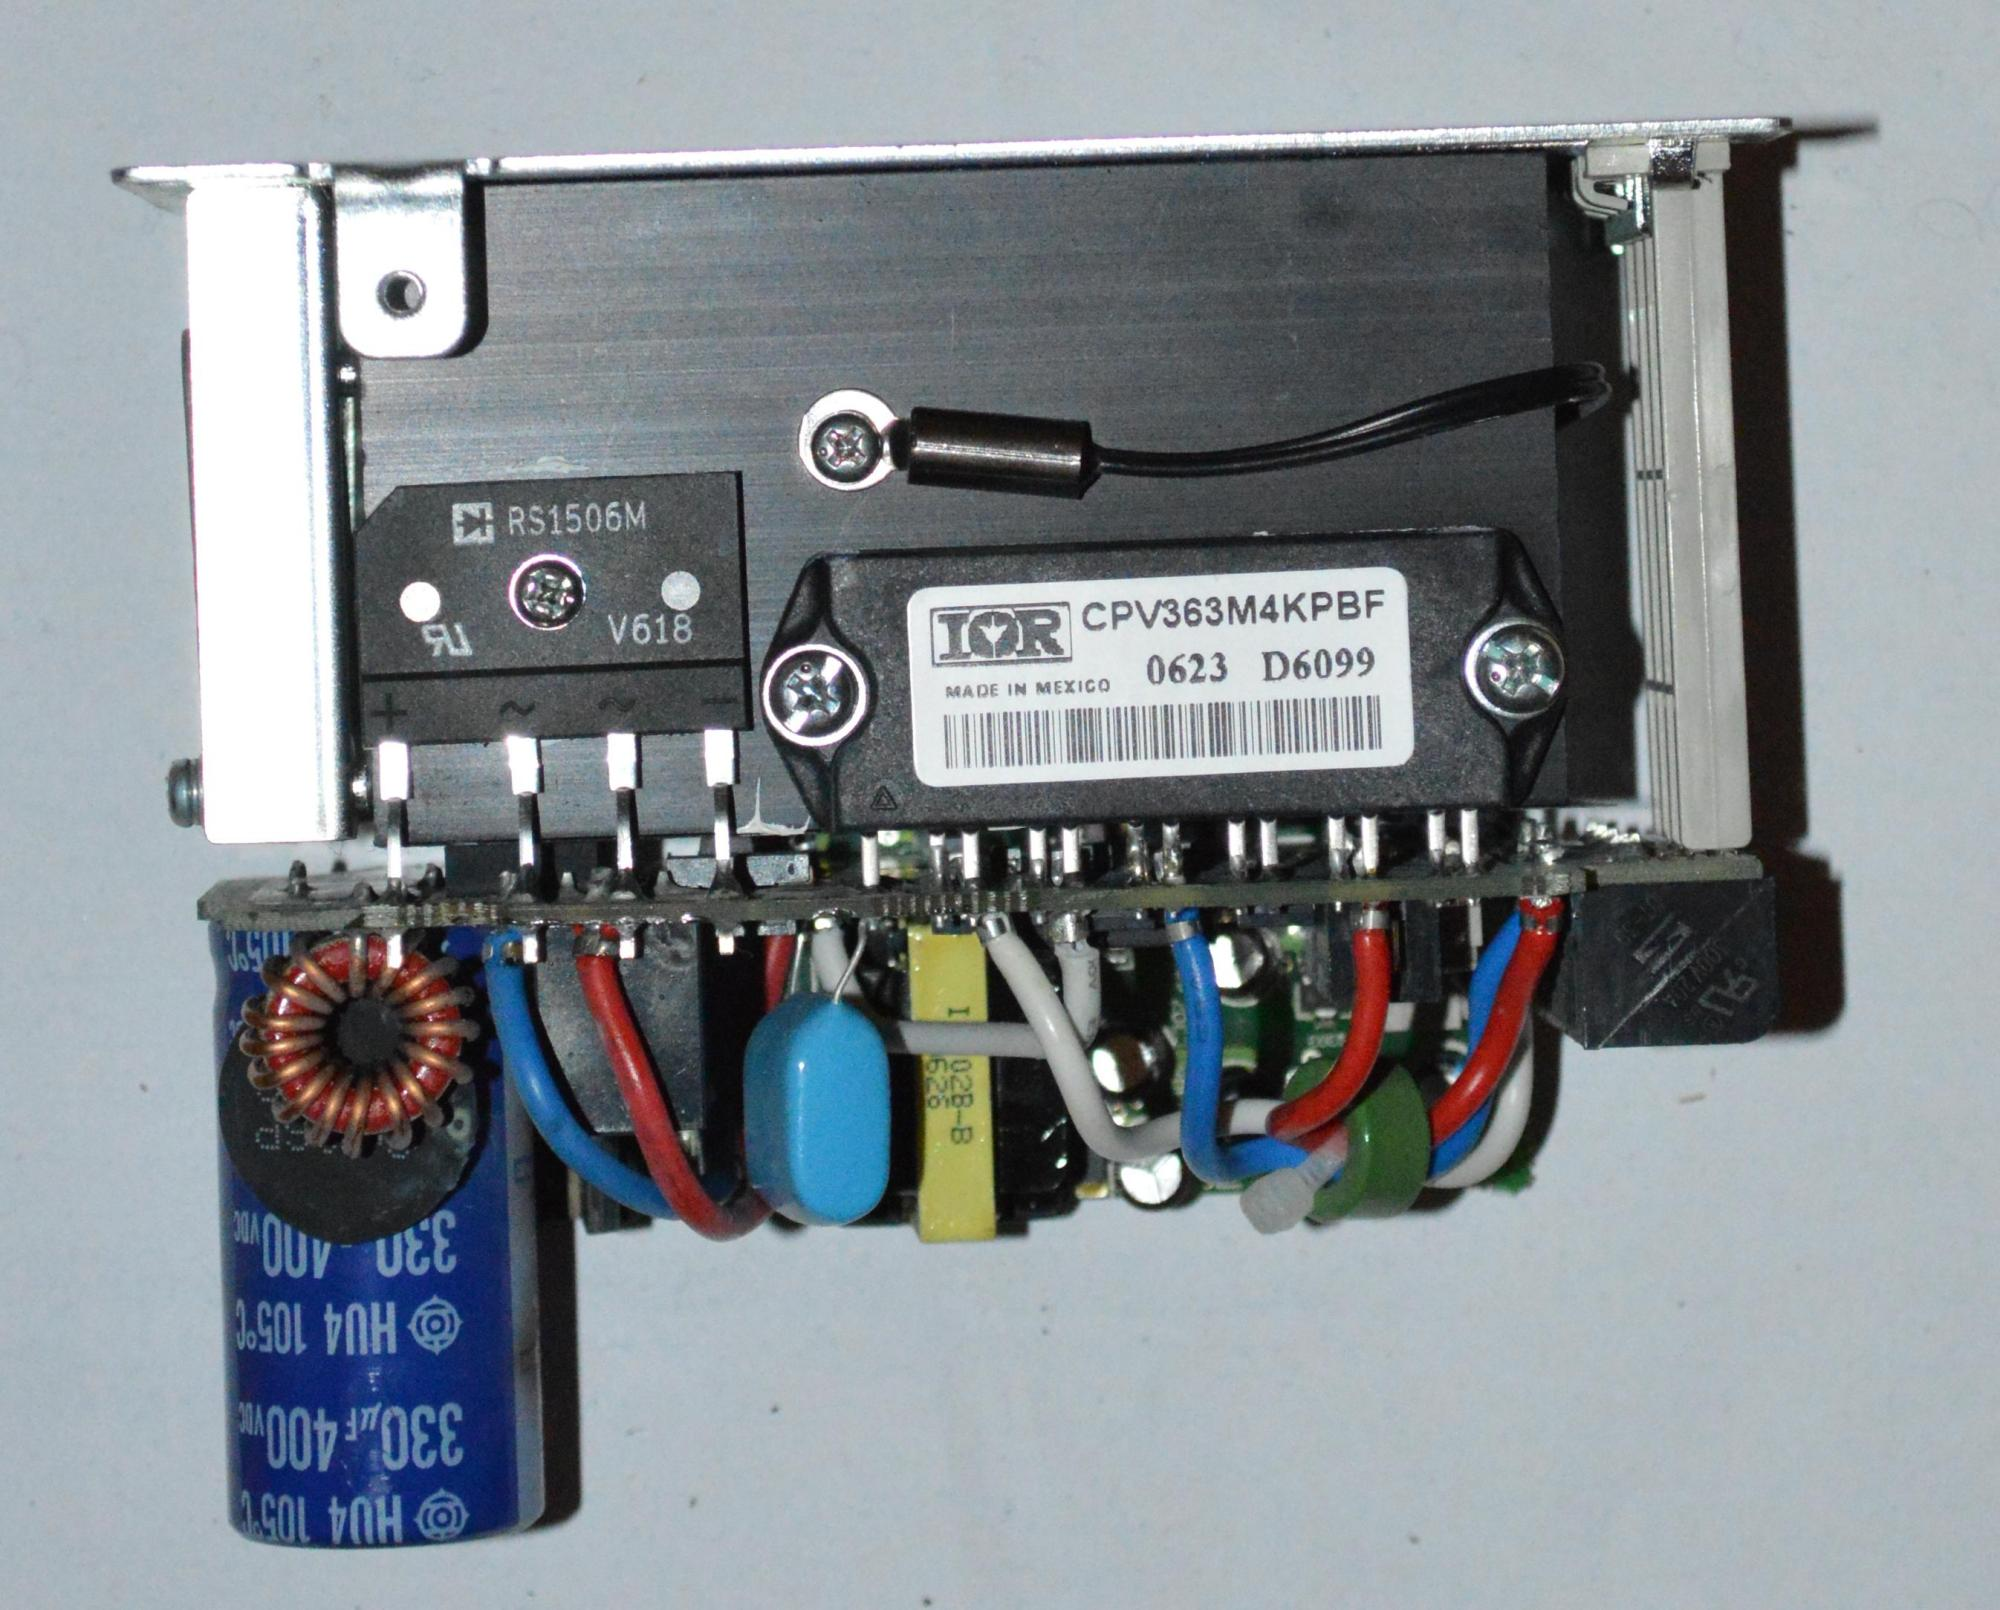 Viewed from a different angle, the attachment of the power modules to the heat-sink is visible. The wire attaced to the heat sink just above the modules is a temperature sensor.